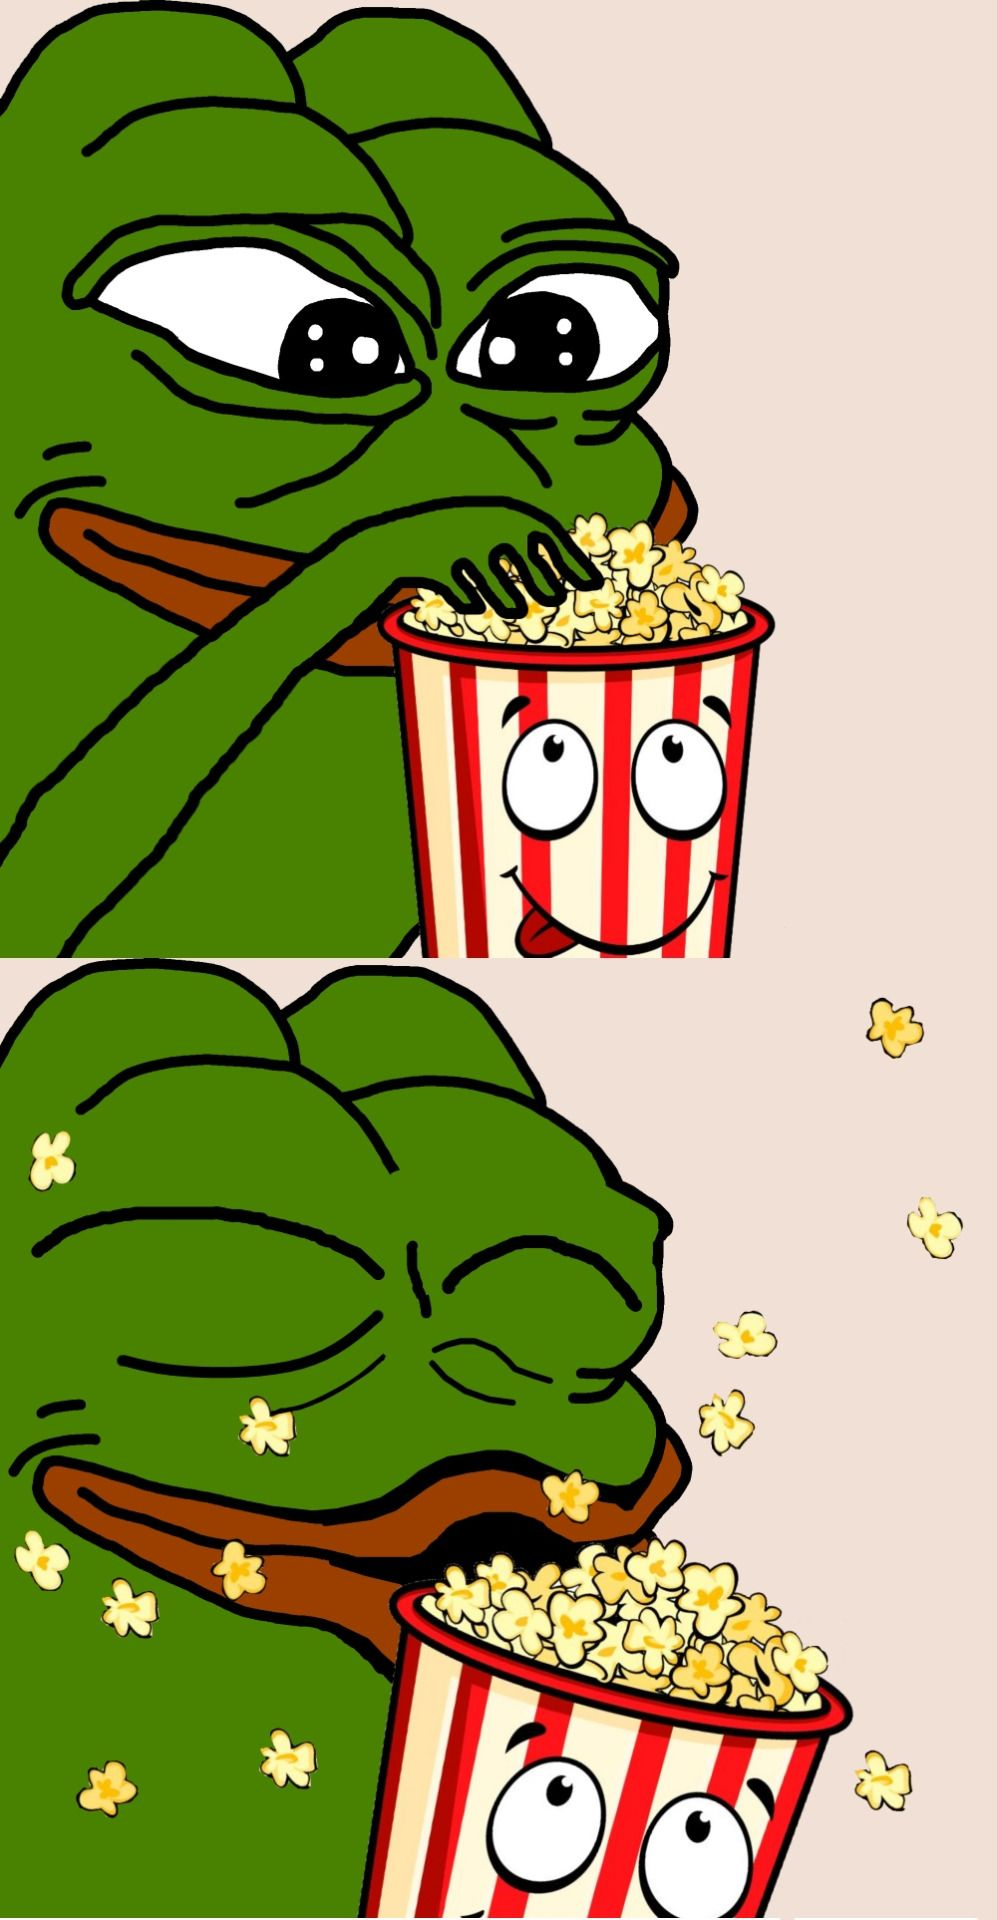 Pepe The Frog | ❝ pepe ❞ | Pinterest | Frogs, Memes and Dankest ...